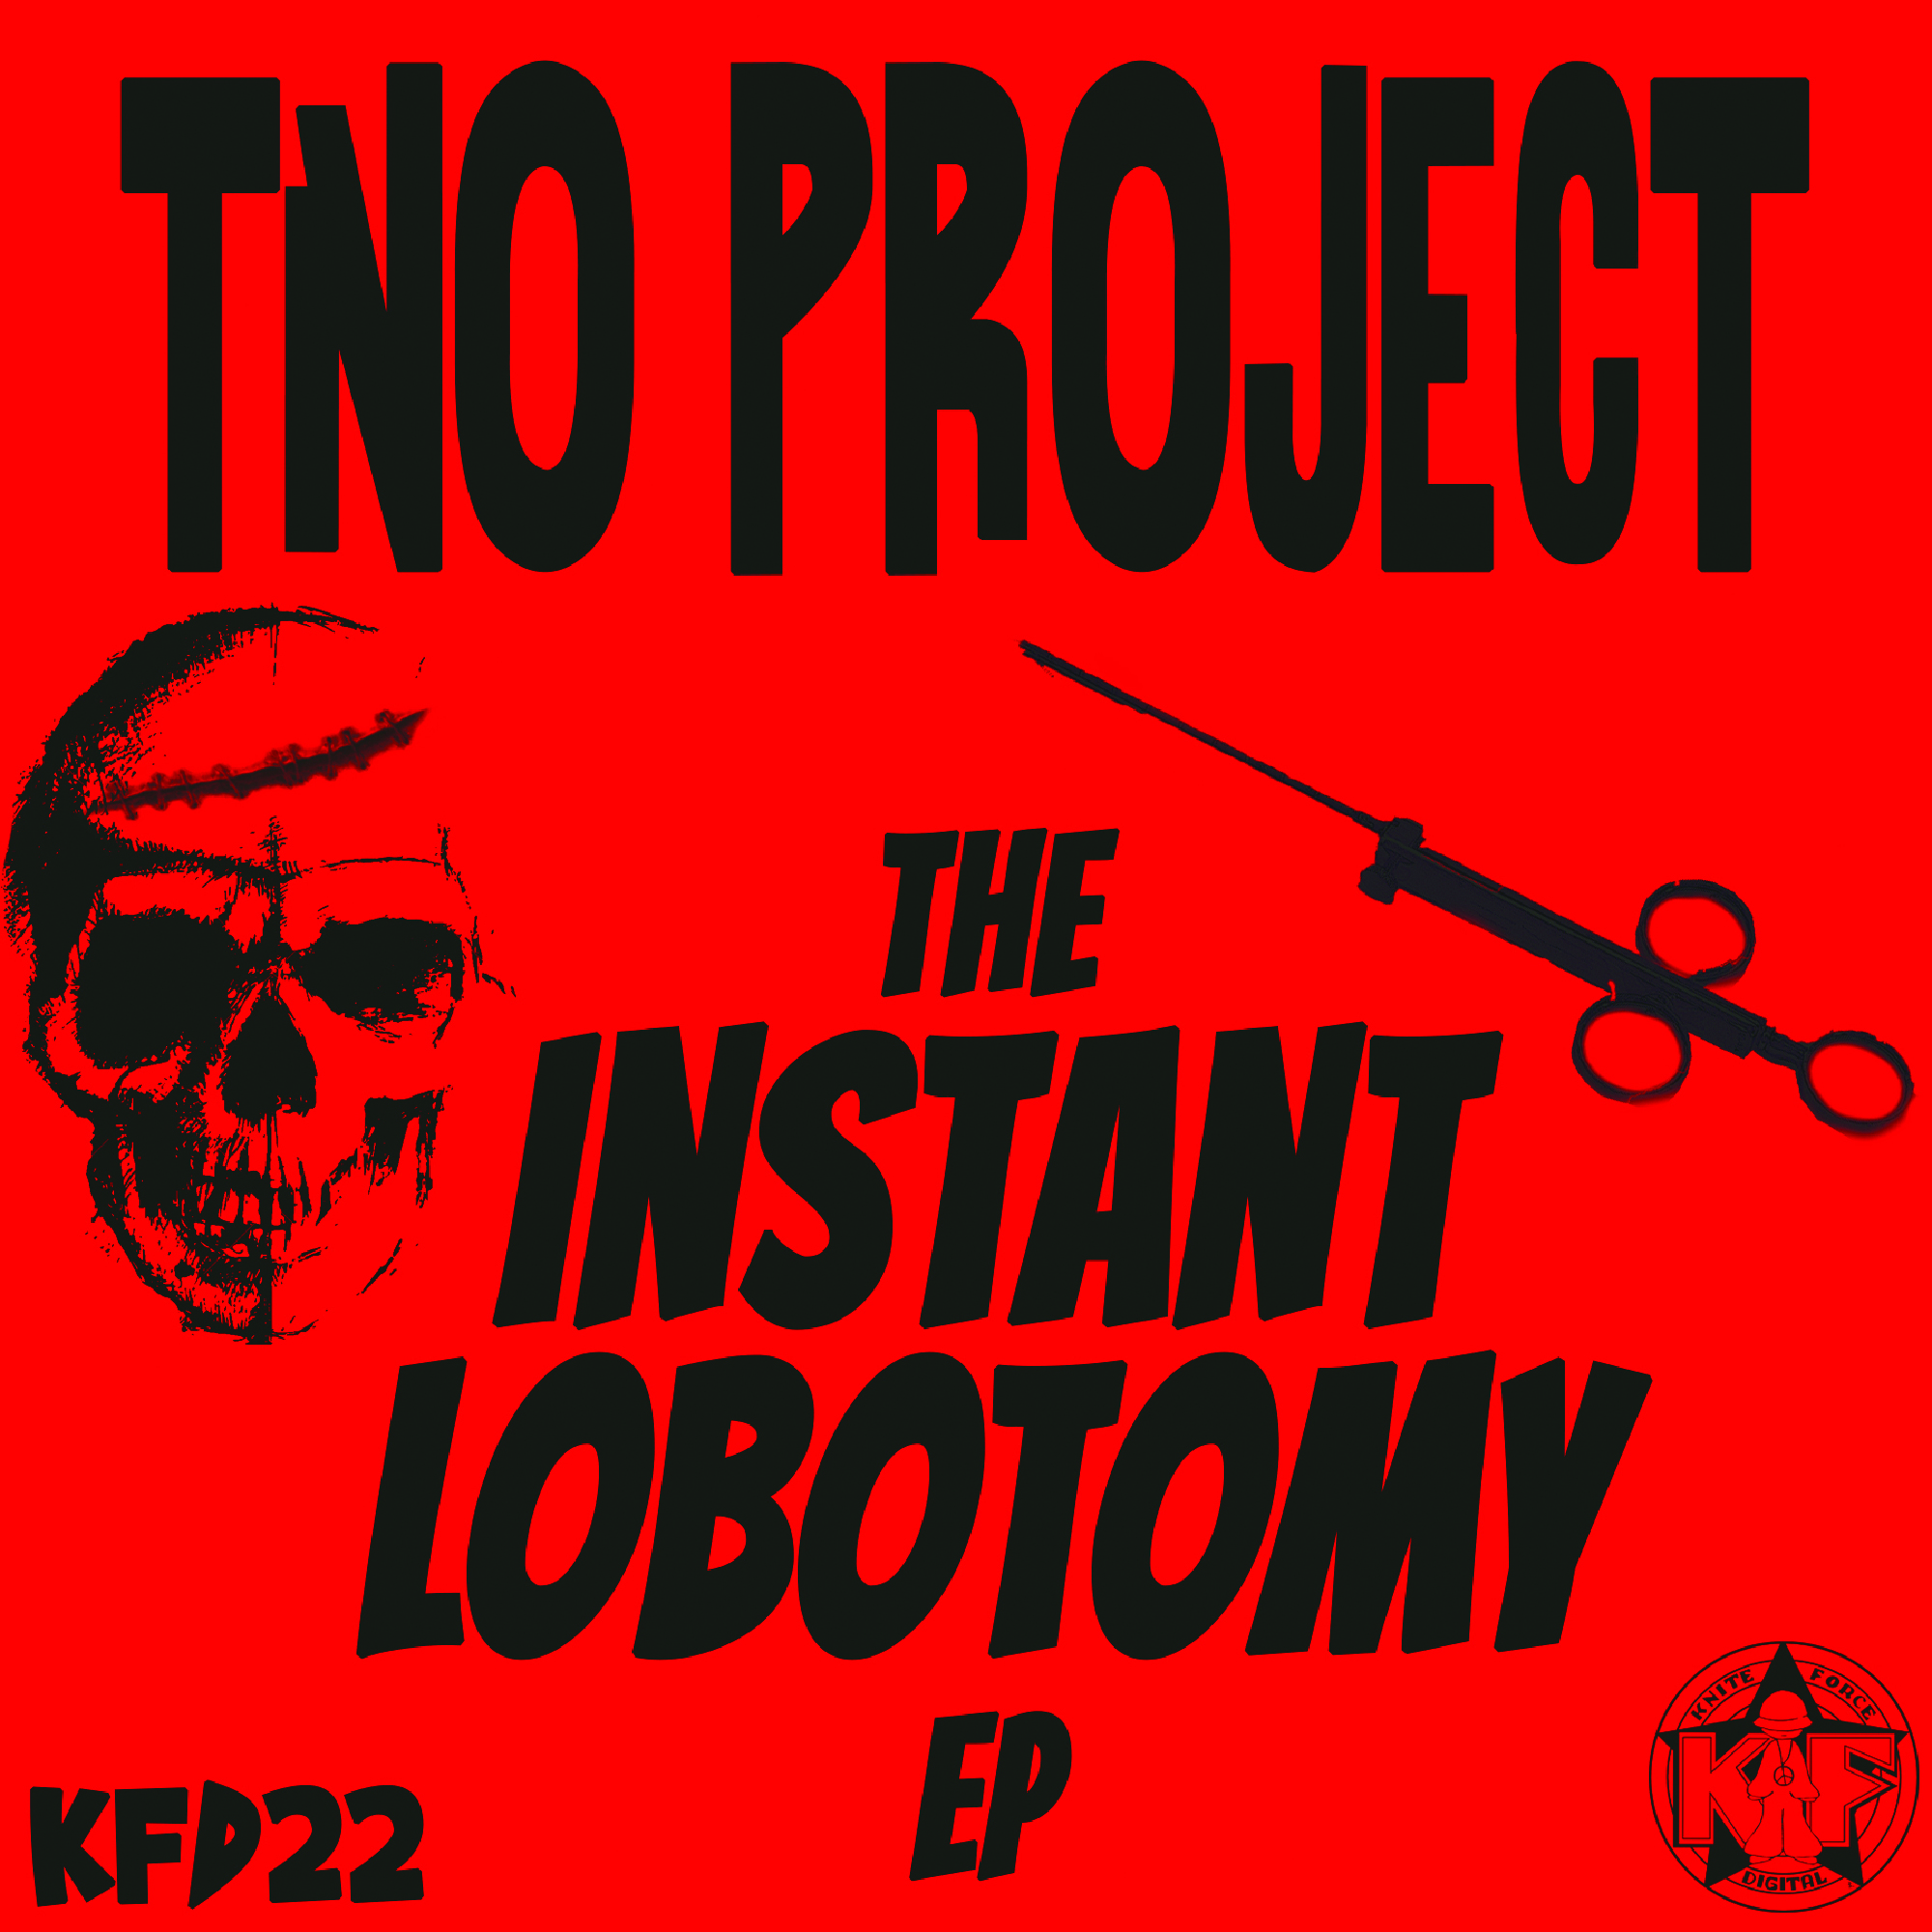 [KFD022] TNO Project - The Instant Labotomy EP (Digital Only)